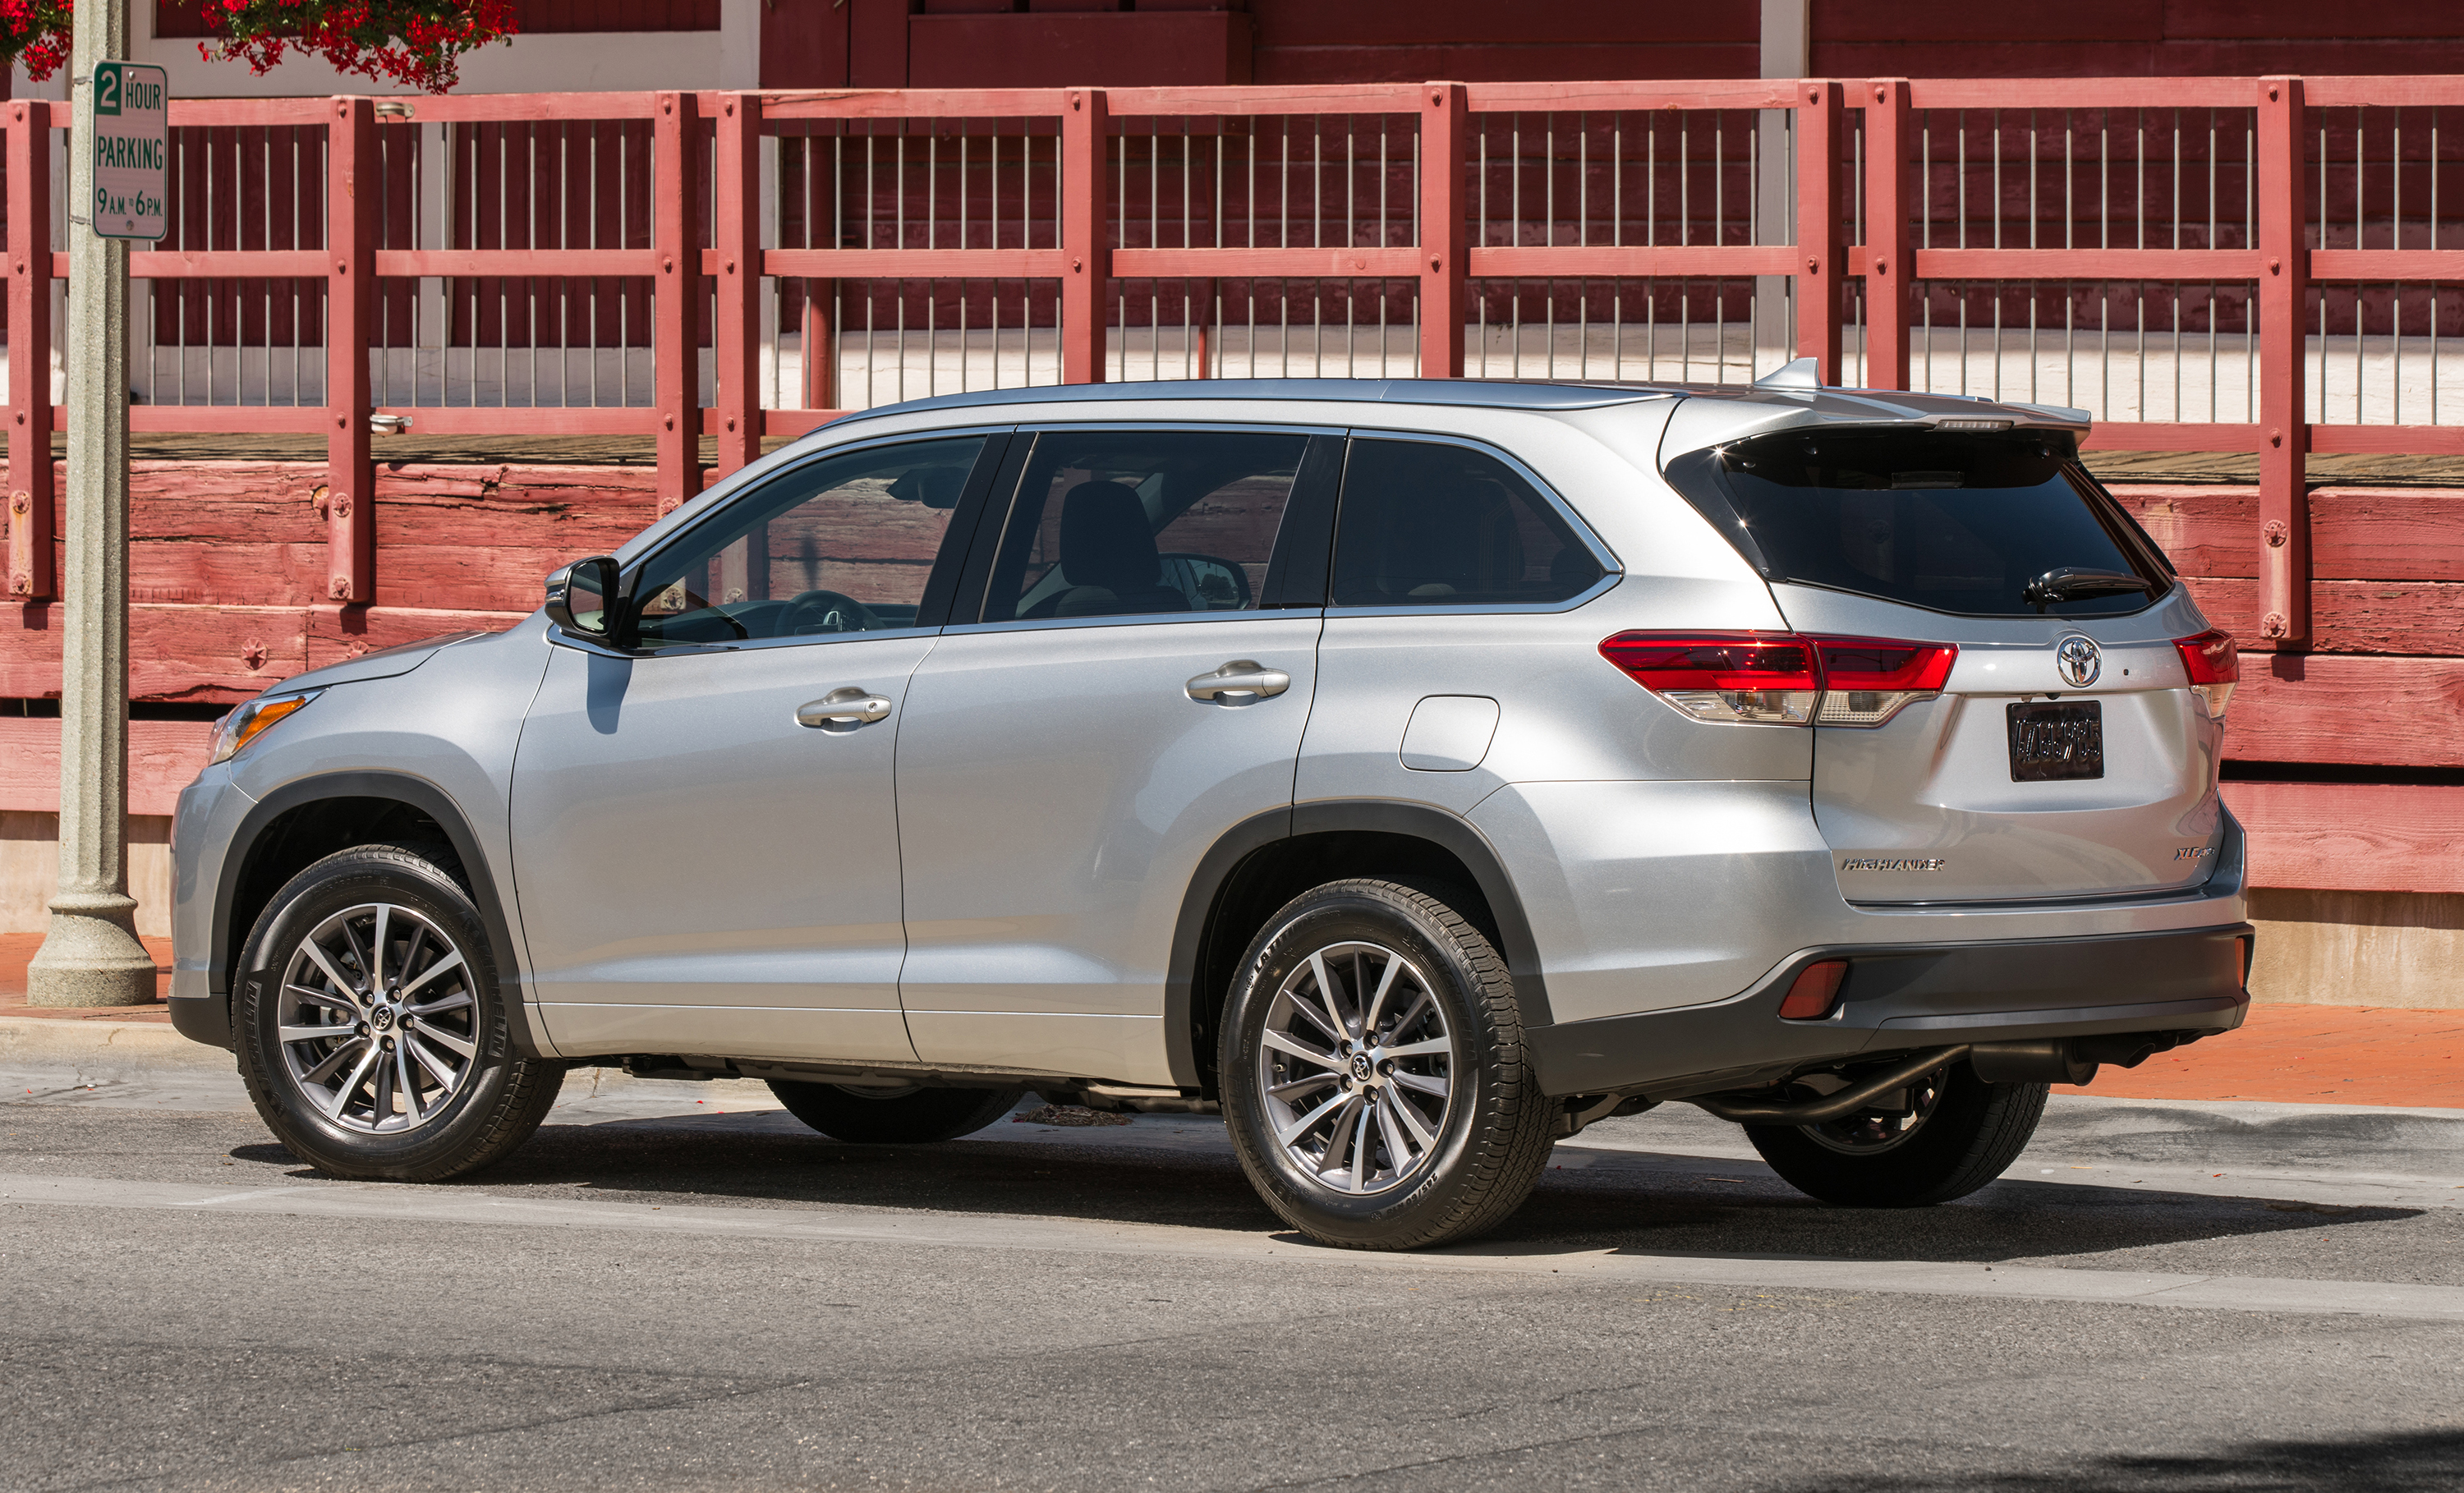 Toyota kluger photo - 7